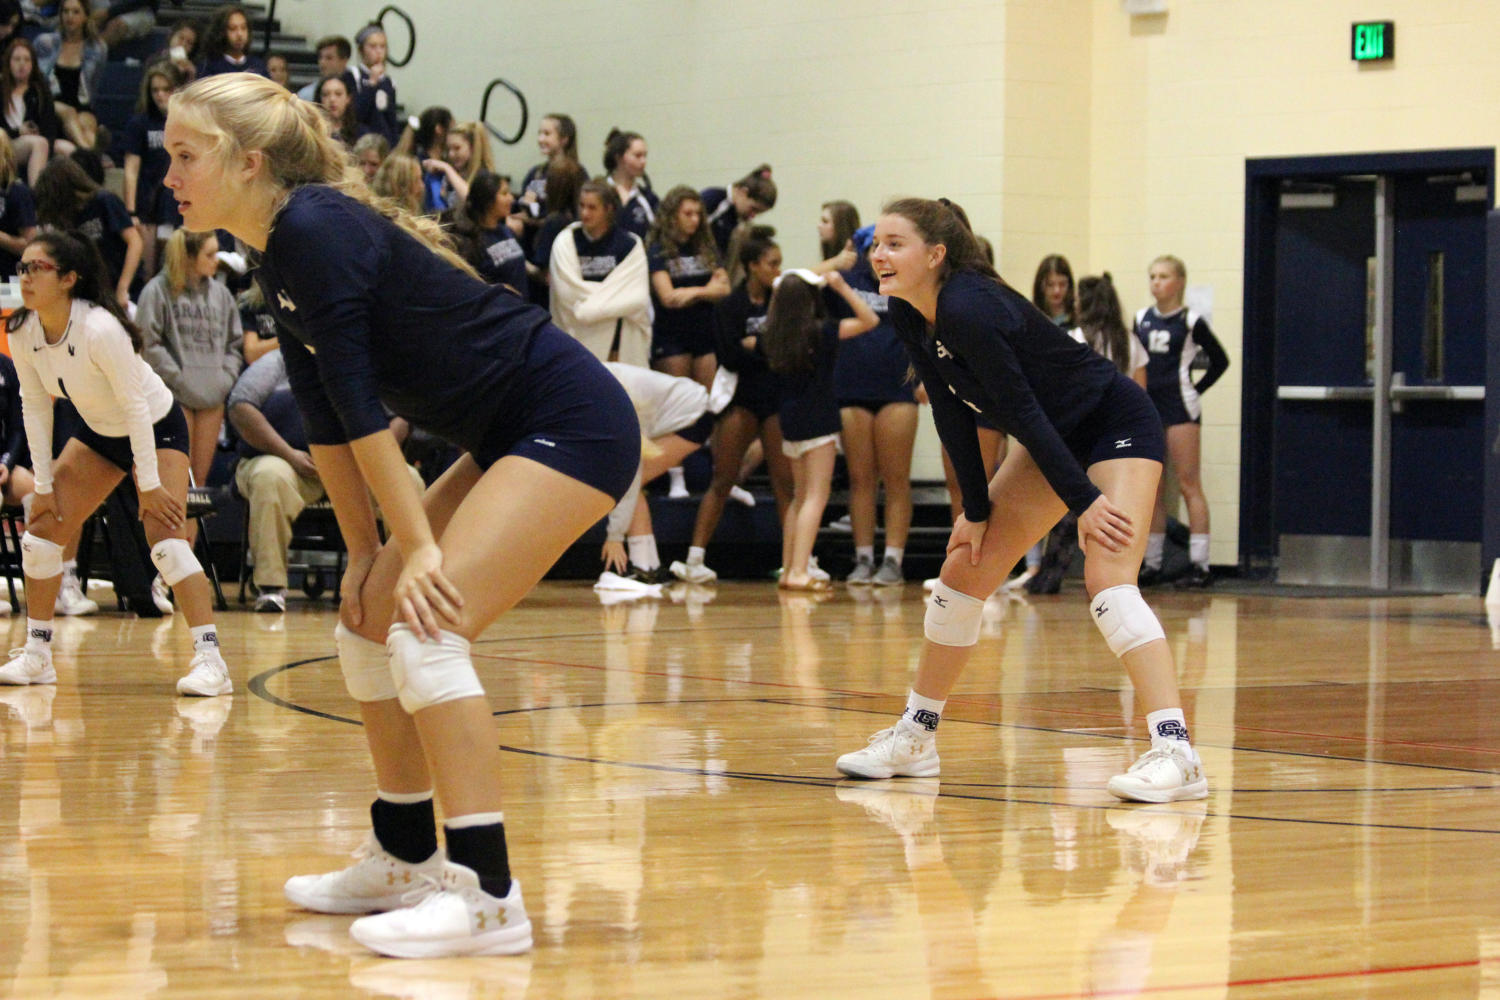 Volleyball suffered a disappointing lost against East Central on Friday Oct. 6